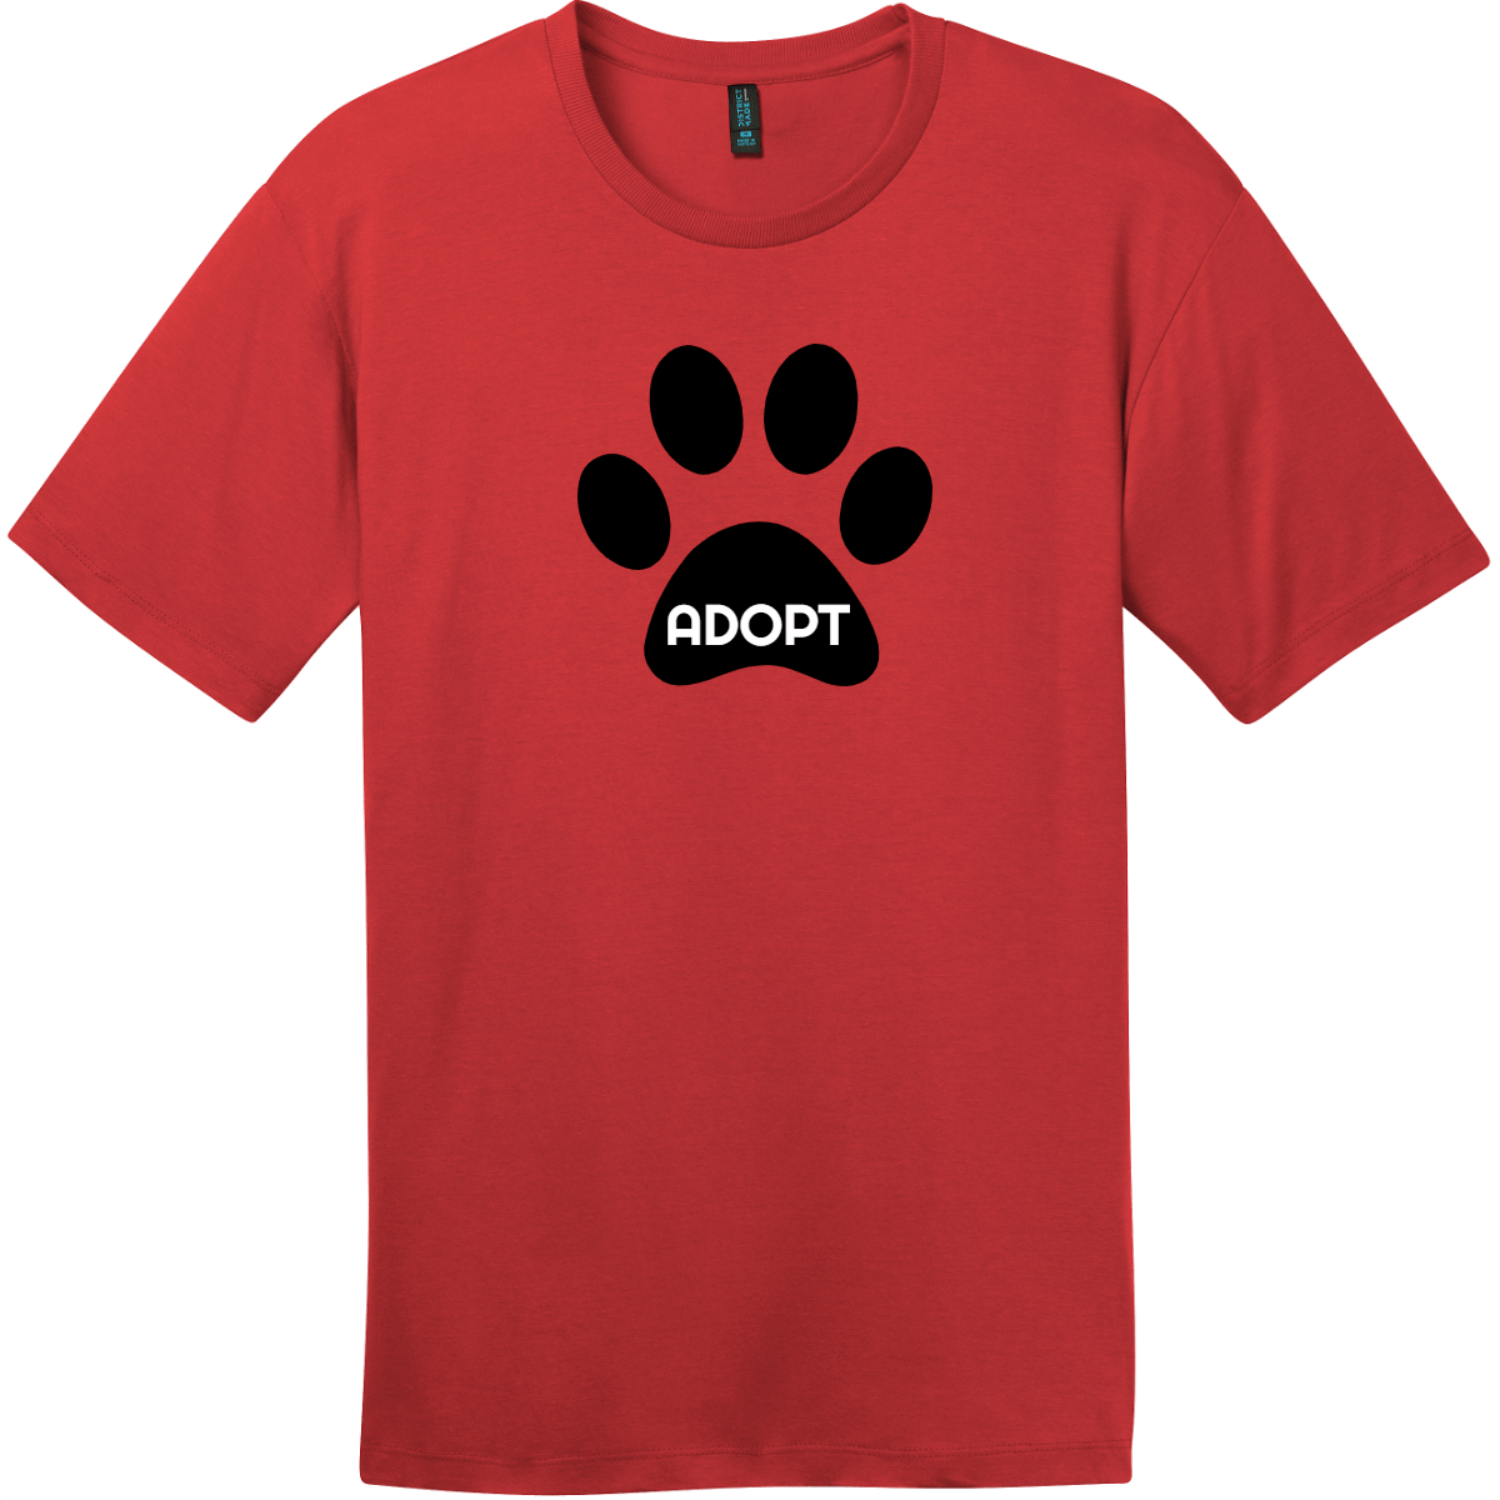 Adopt Pet Paw T-Shirt Classic Red District Perfect Weight Tee DT104